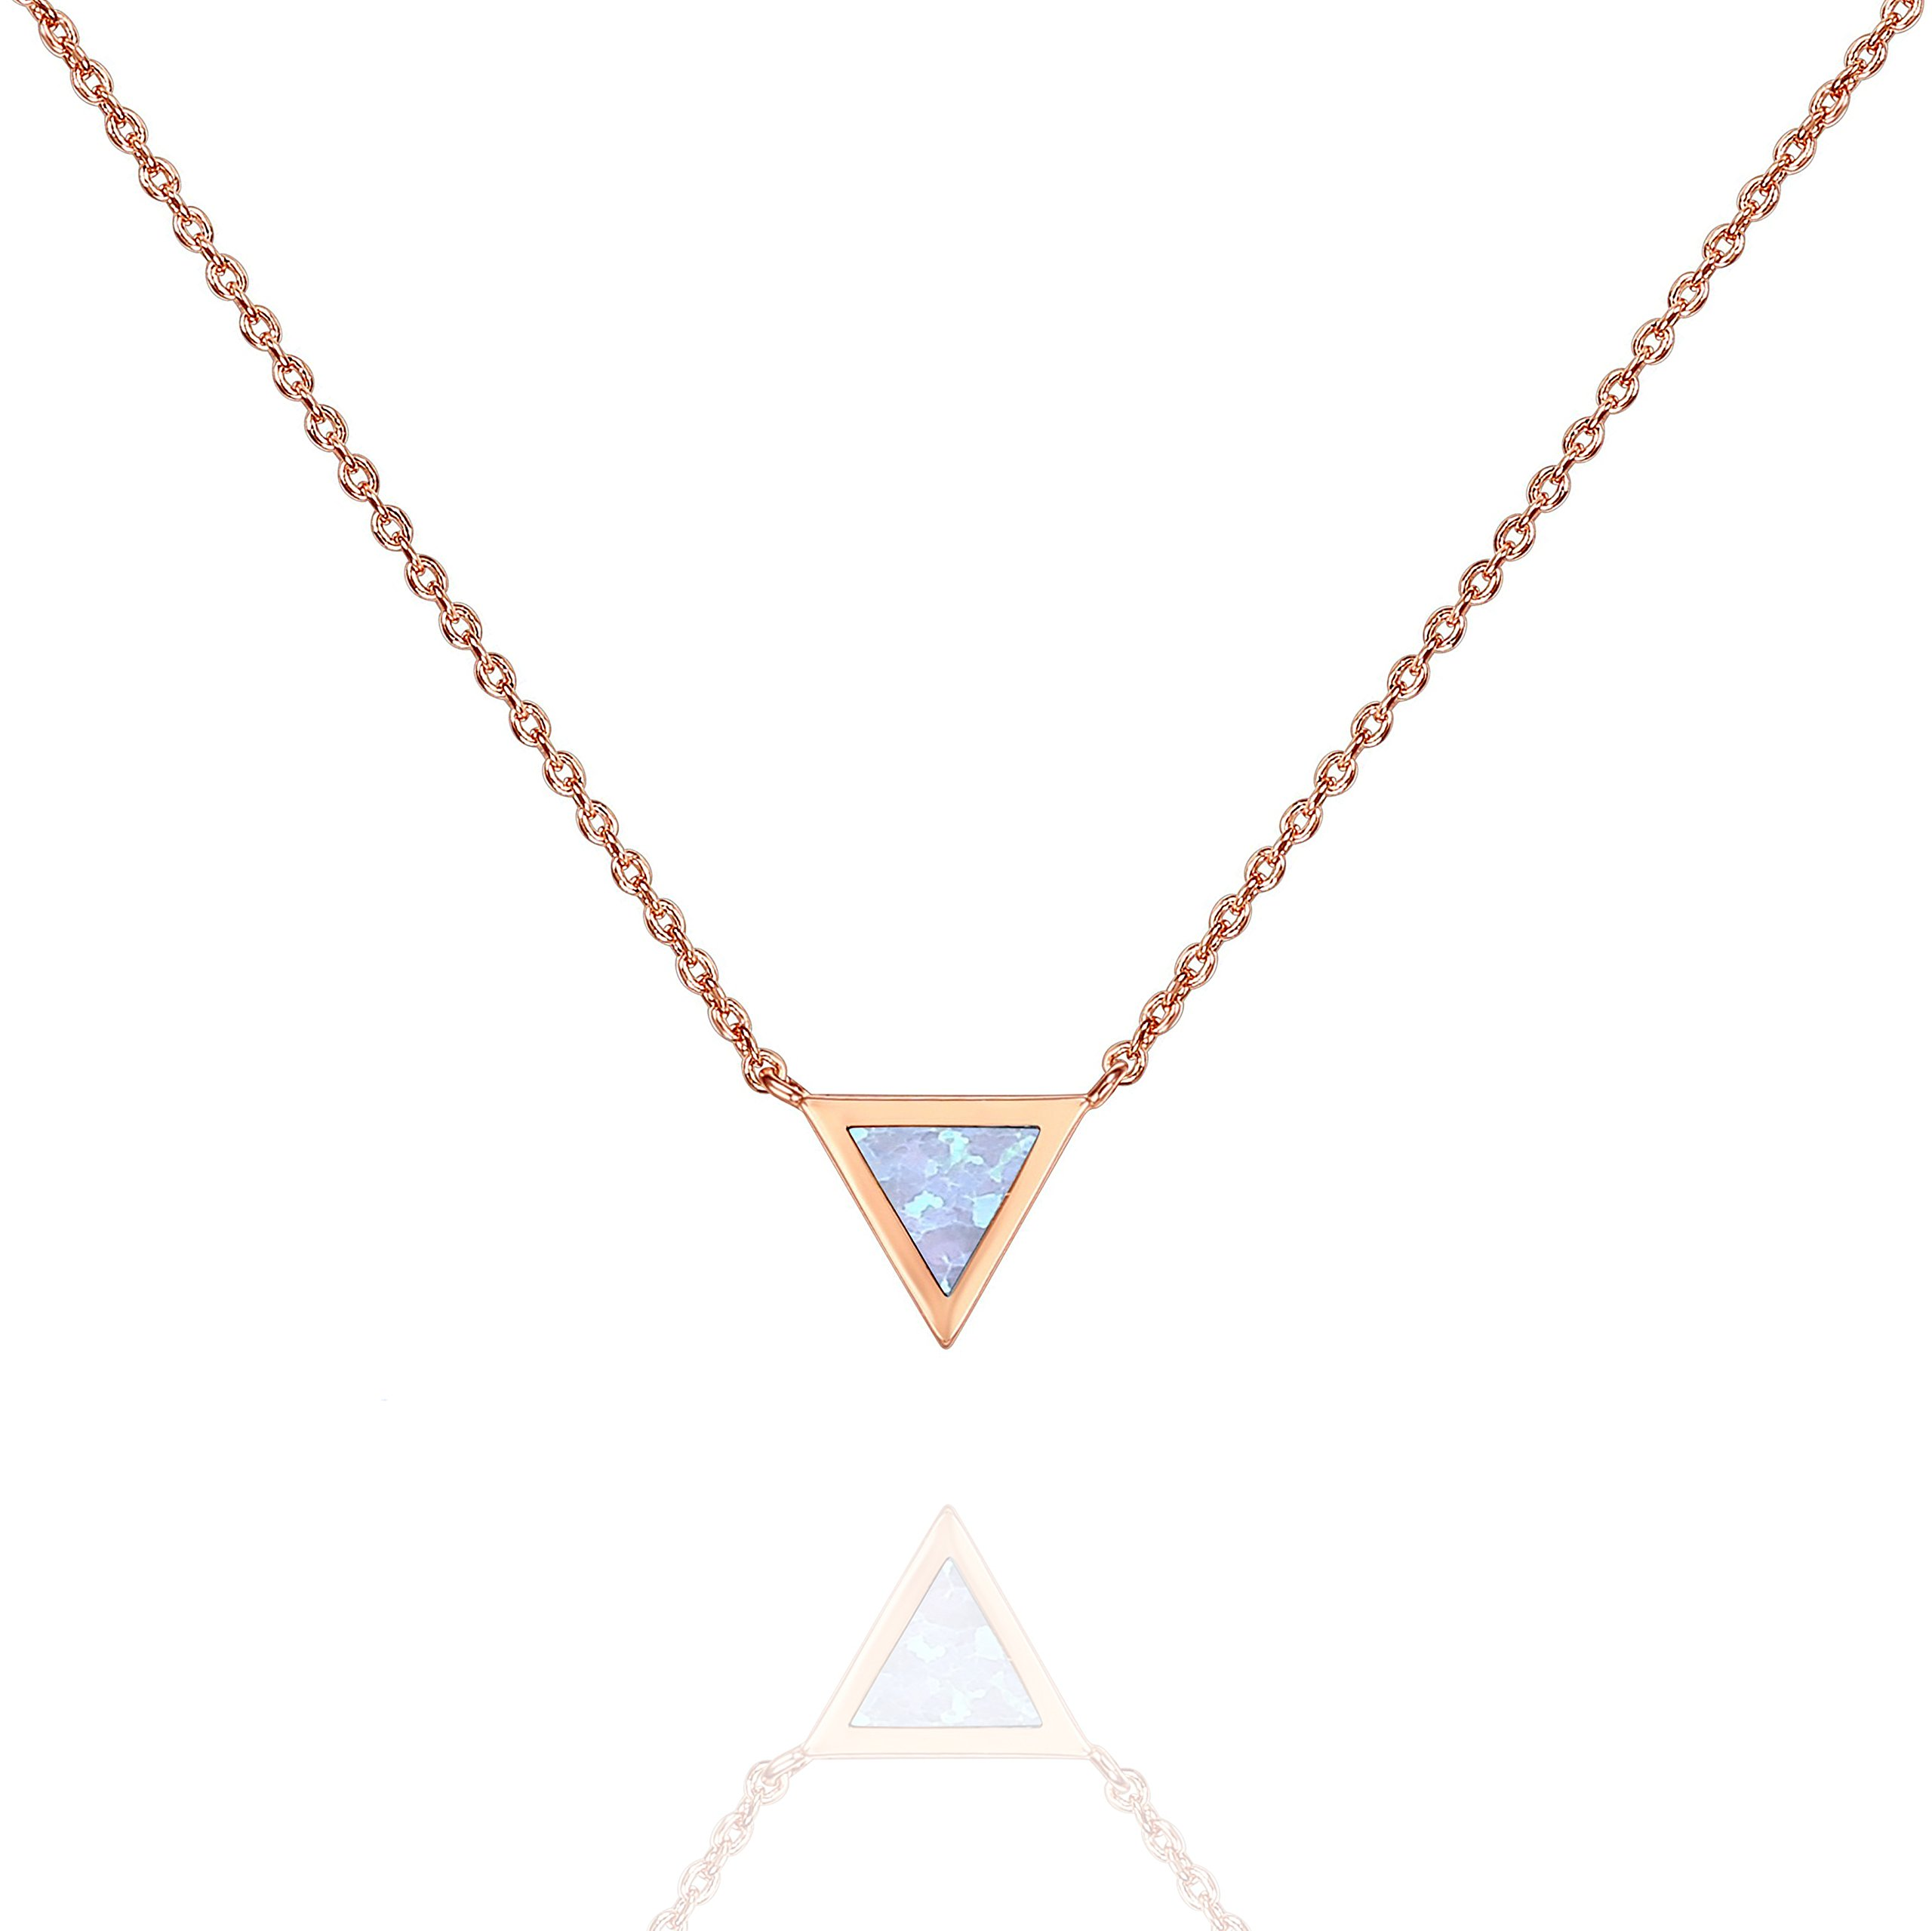 PAVOI 14K Rose Gold Plated Triangle Bezel Set White Opal Necklace 16-18''